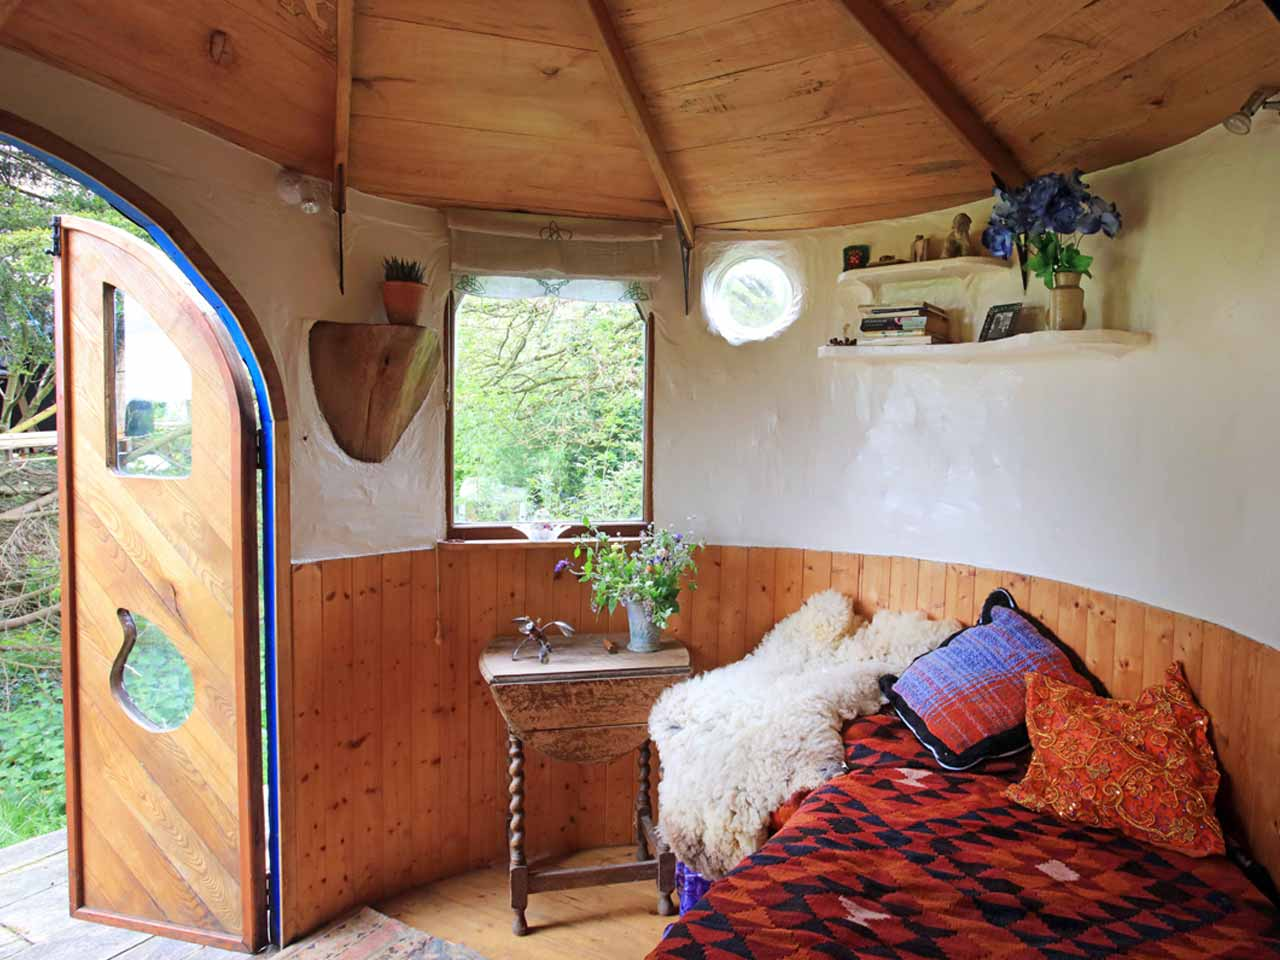 Love Shack – owned by Grant Oatley in Devon